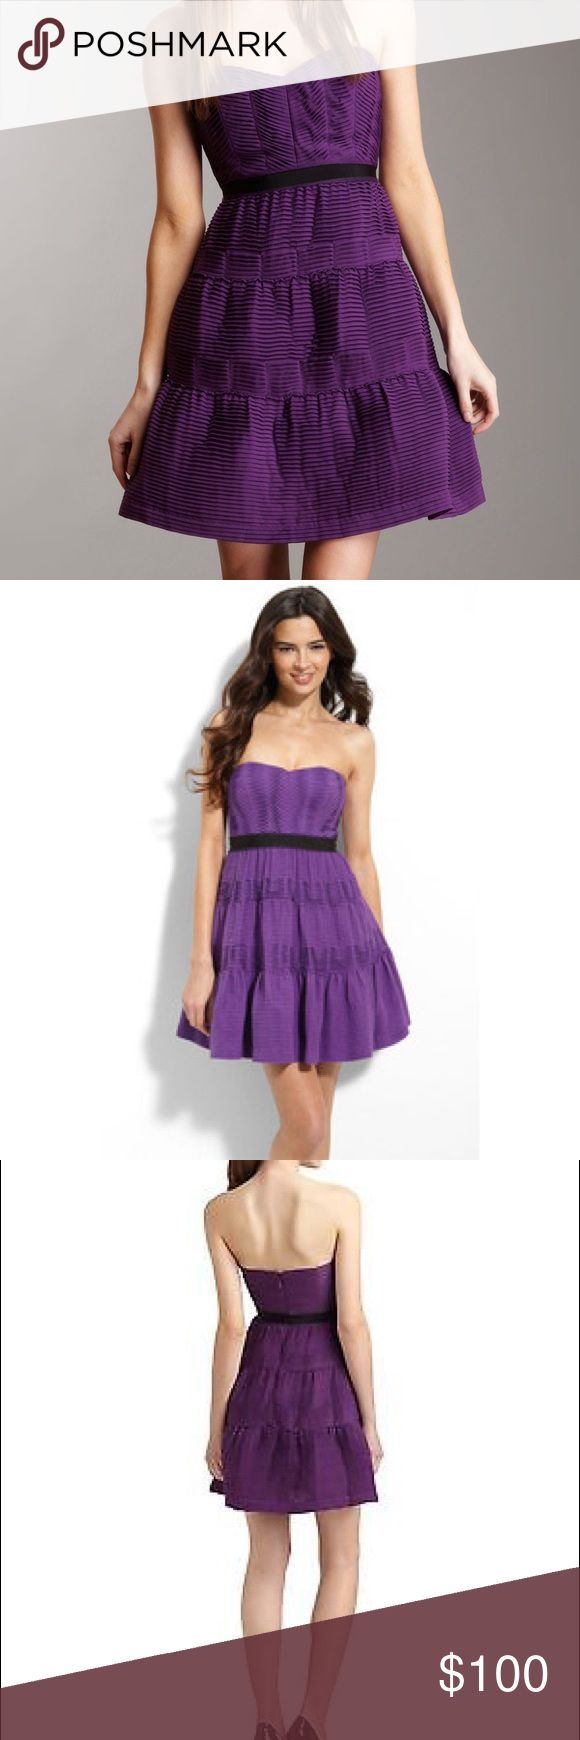 BCBGMAXAZRIA Strapless Pleated Chiffon Dress Pleated chiffon strapless dress with sweetheart bodice & contrasting waistline.   A layer of tulle under the hems lends volume through the skirt  Concealed back zip closure, black gross-grain ribbons at waist.   Style#IEC6J926-514, color: grape.          Condition: excellent like-new. BCBGMaxAzria Dresses Strapless